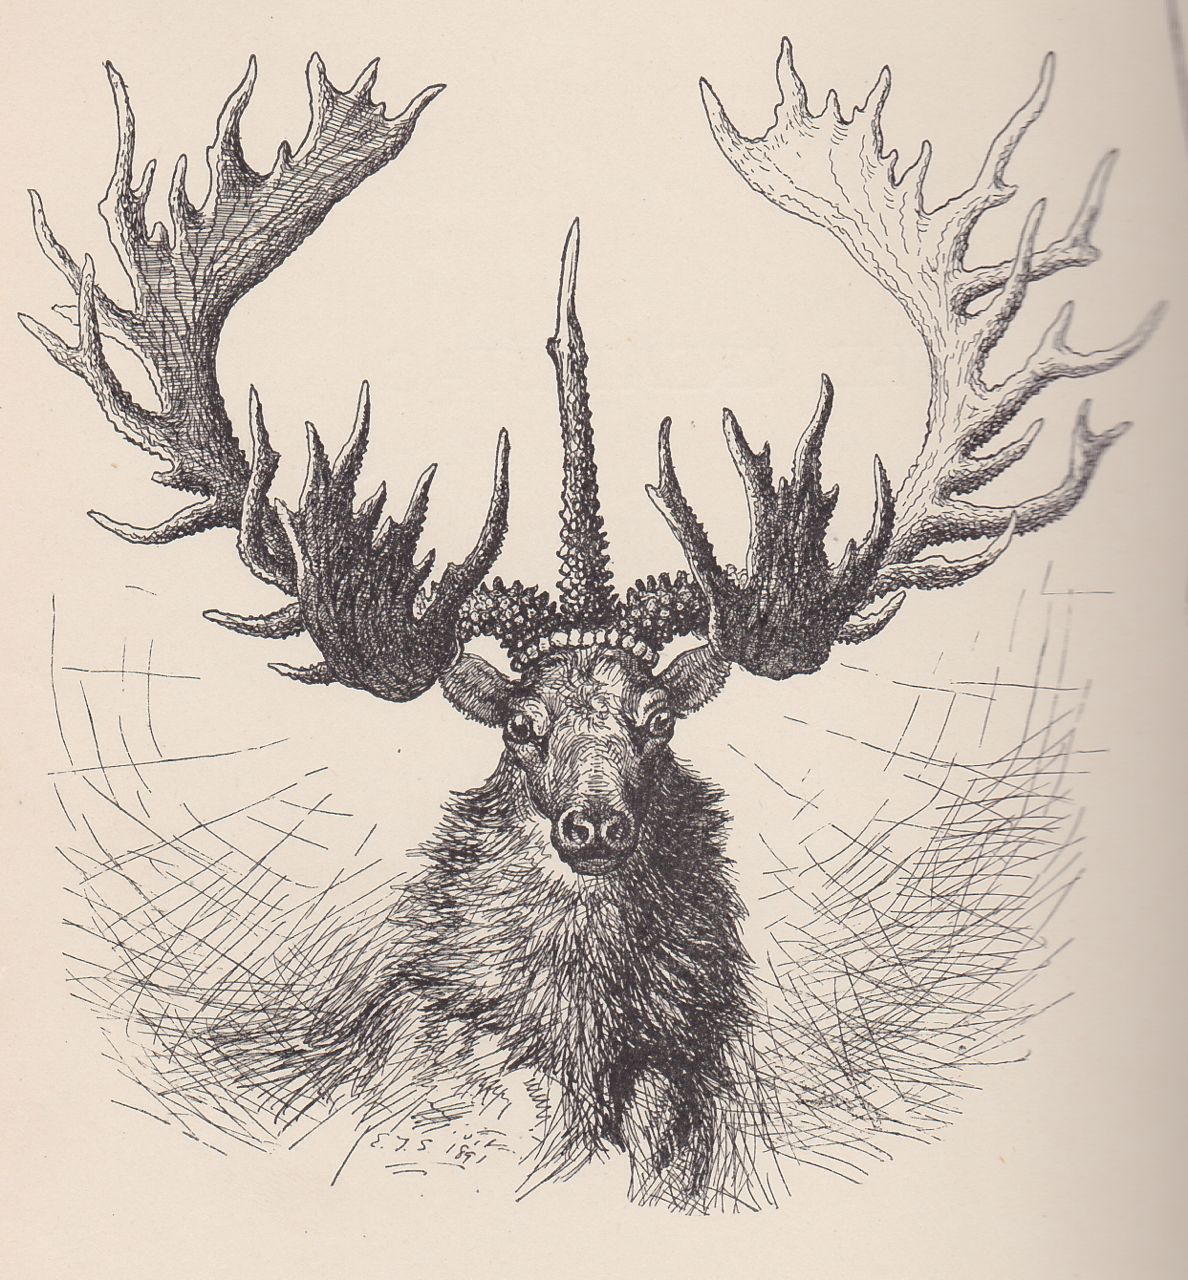 Drawn stag noble Master GreatStagSeton_web Woodsman The Stag